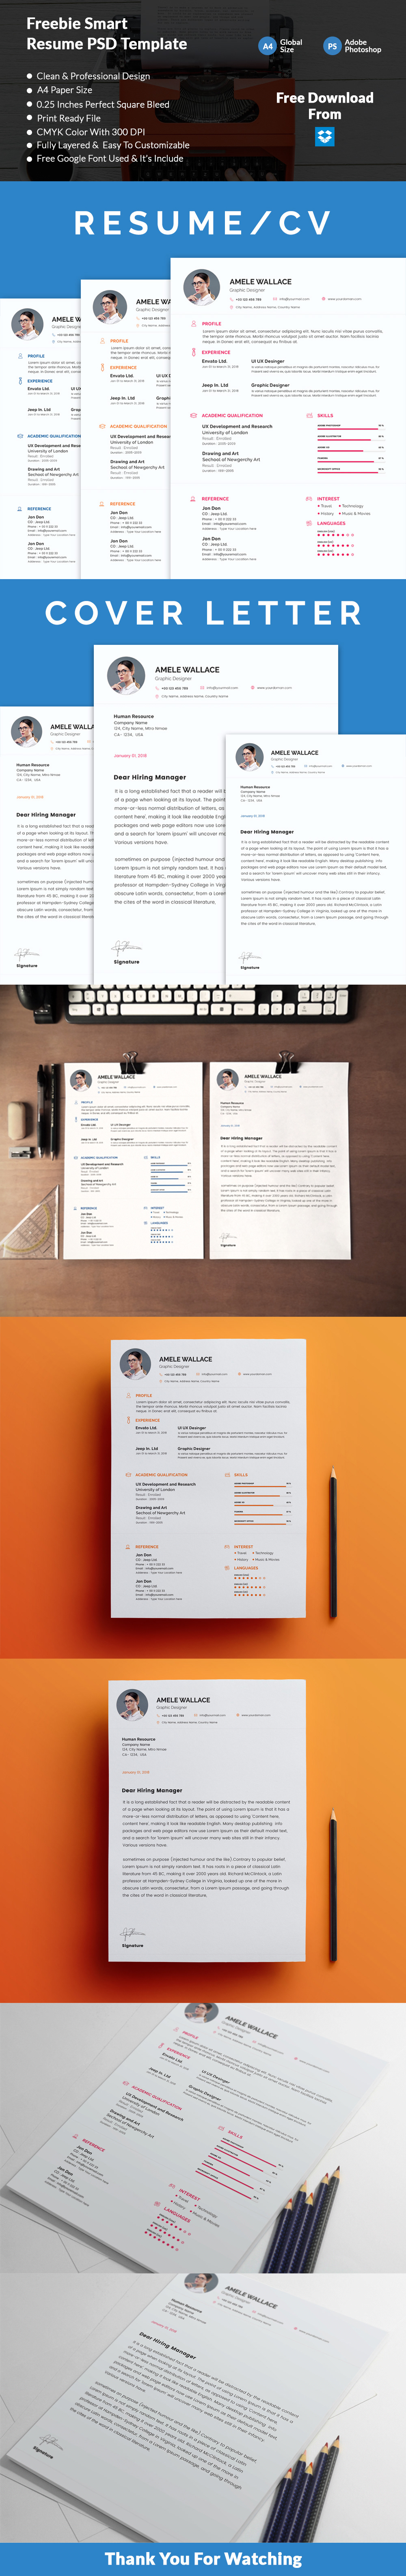 free,Free Resume,free cv,creative,a4,professional,cover letter,clean,info graphic,elegant resume